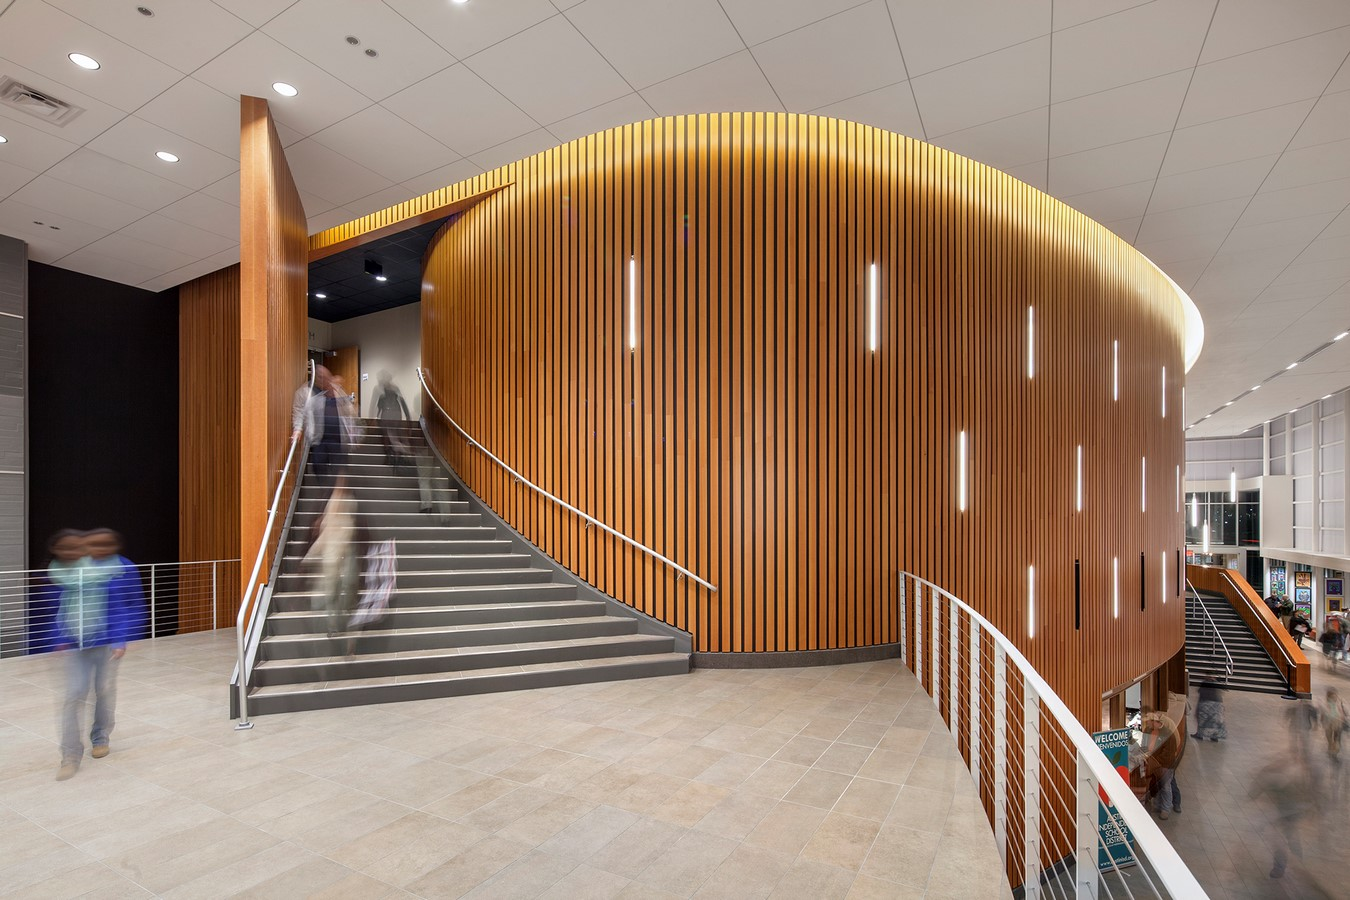 AISD Performing Arts Center by Miró Rivera Architects - Sheet2